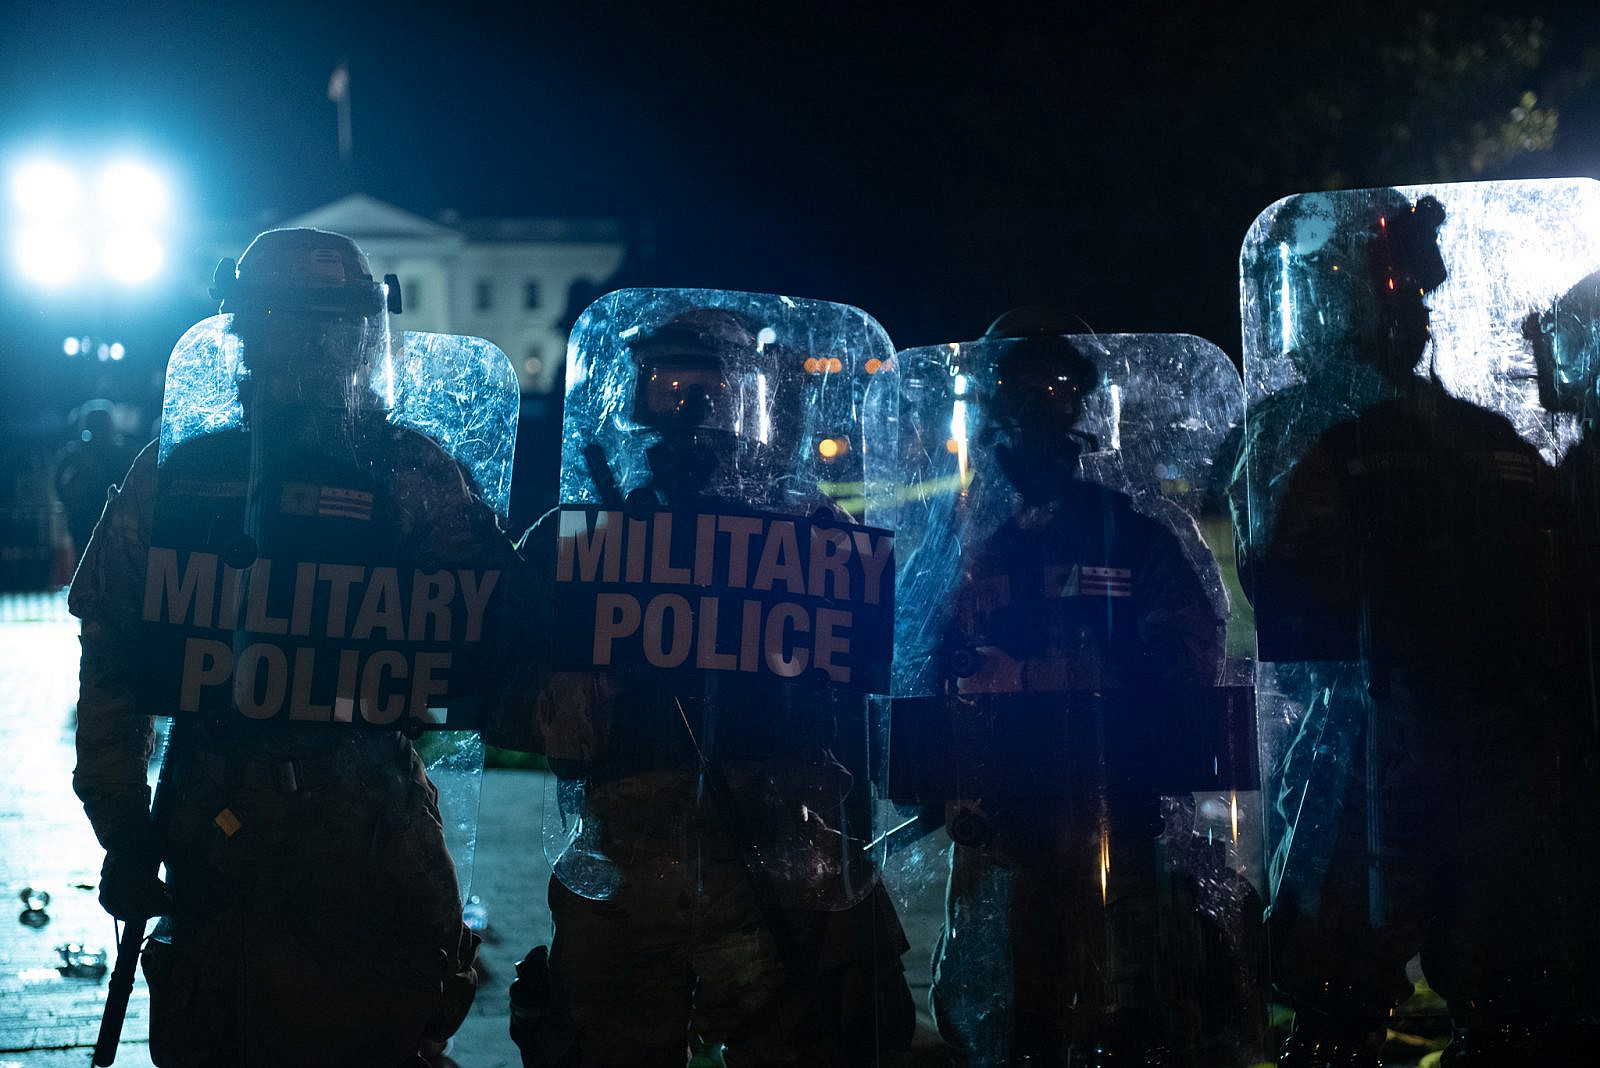 Police with riot control gear at George Floyd protests in Washington DC, Lafayette Square. May 30, 2020. (Rosa Pineda/Wikimedia Commons)